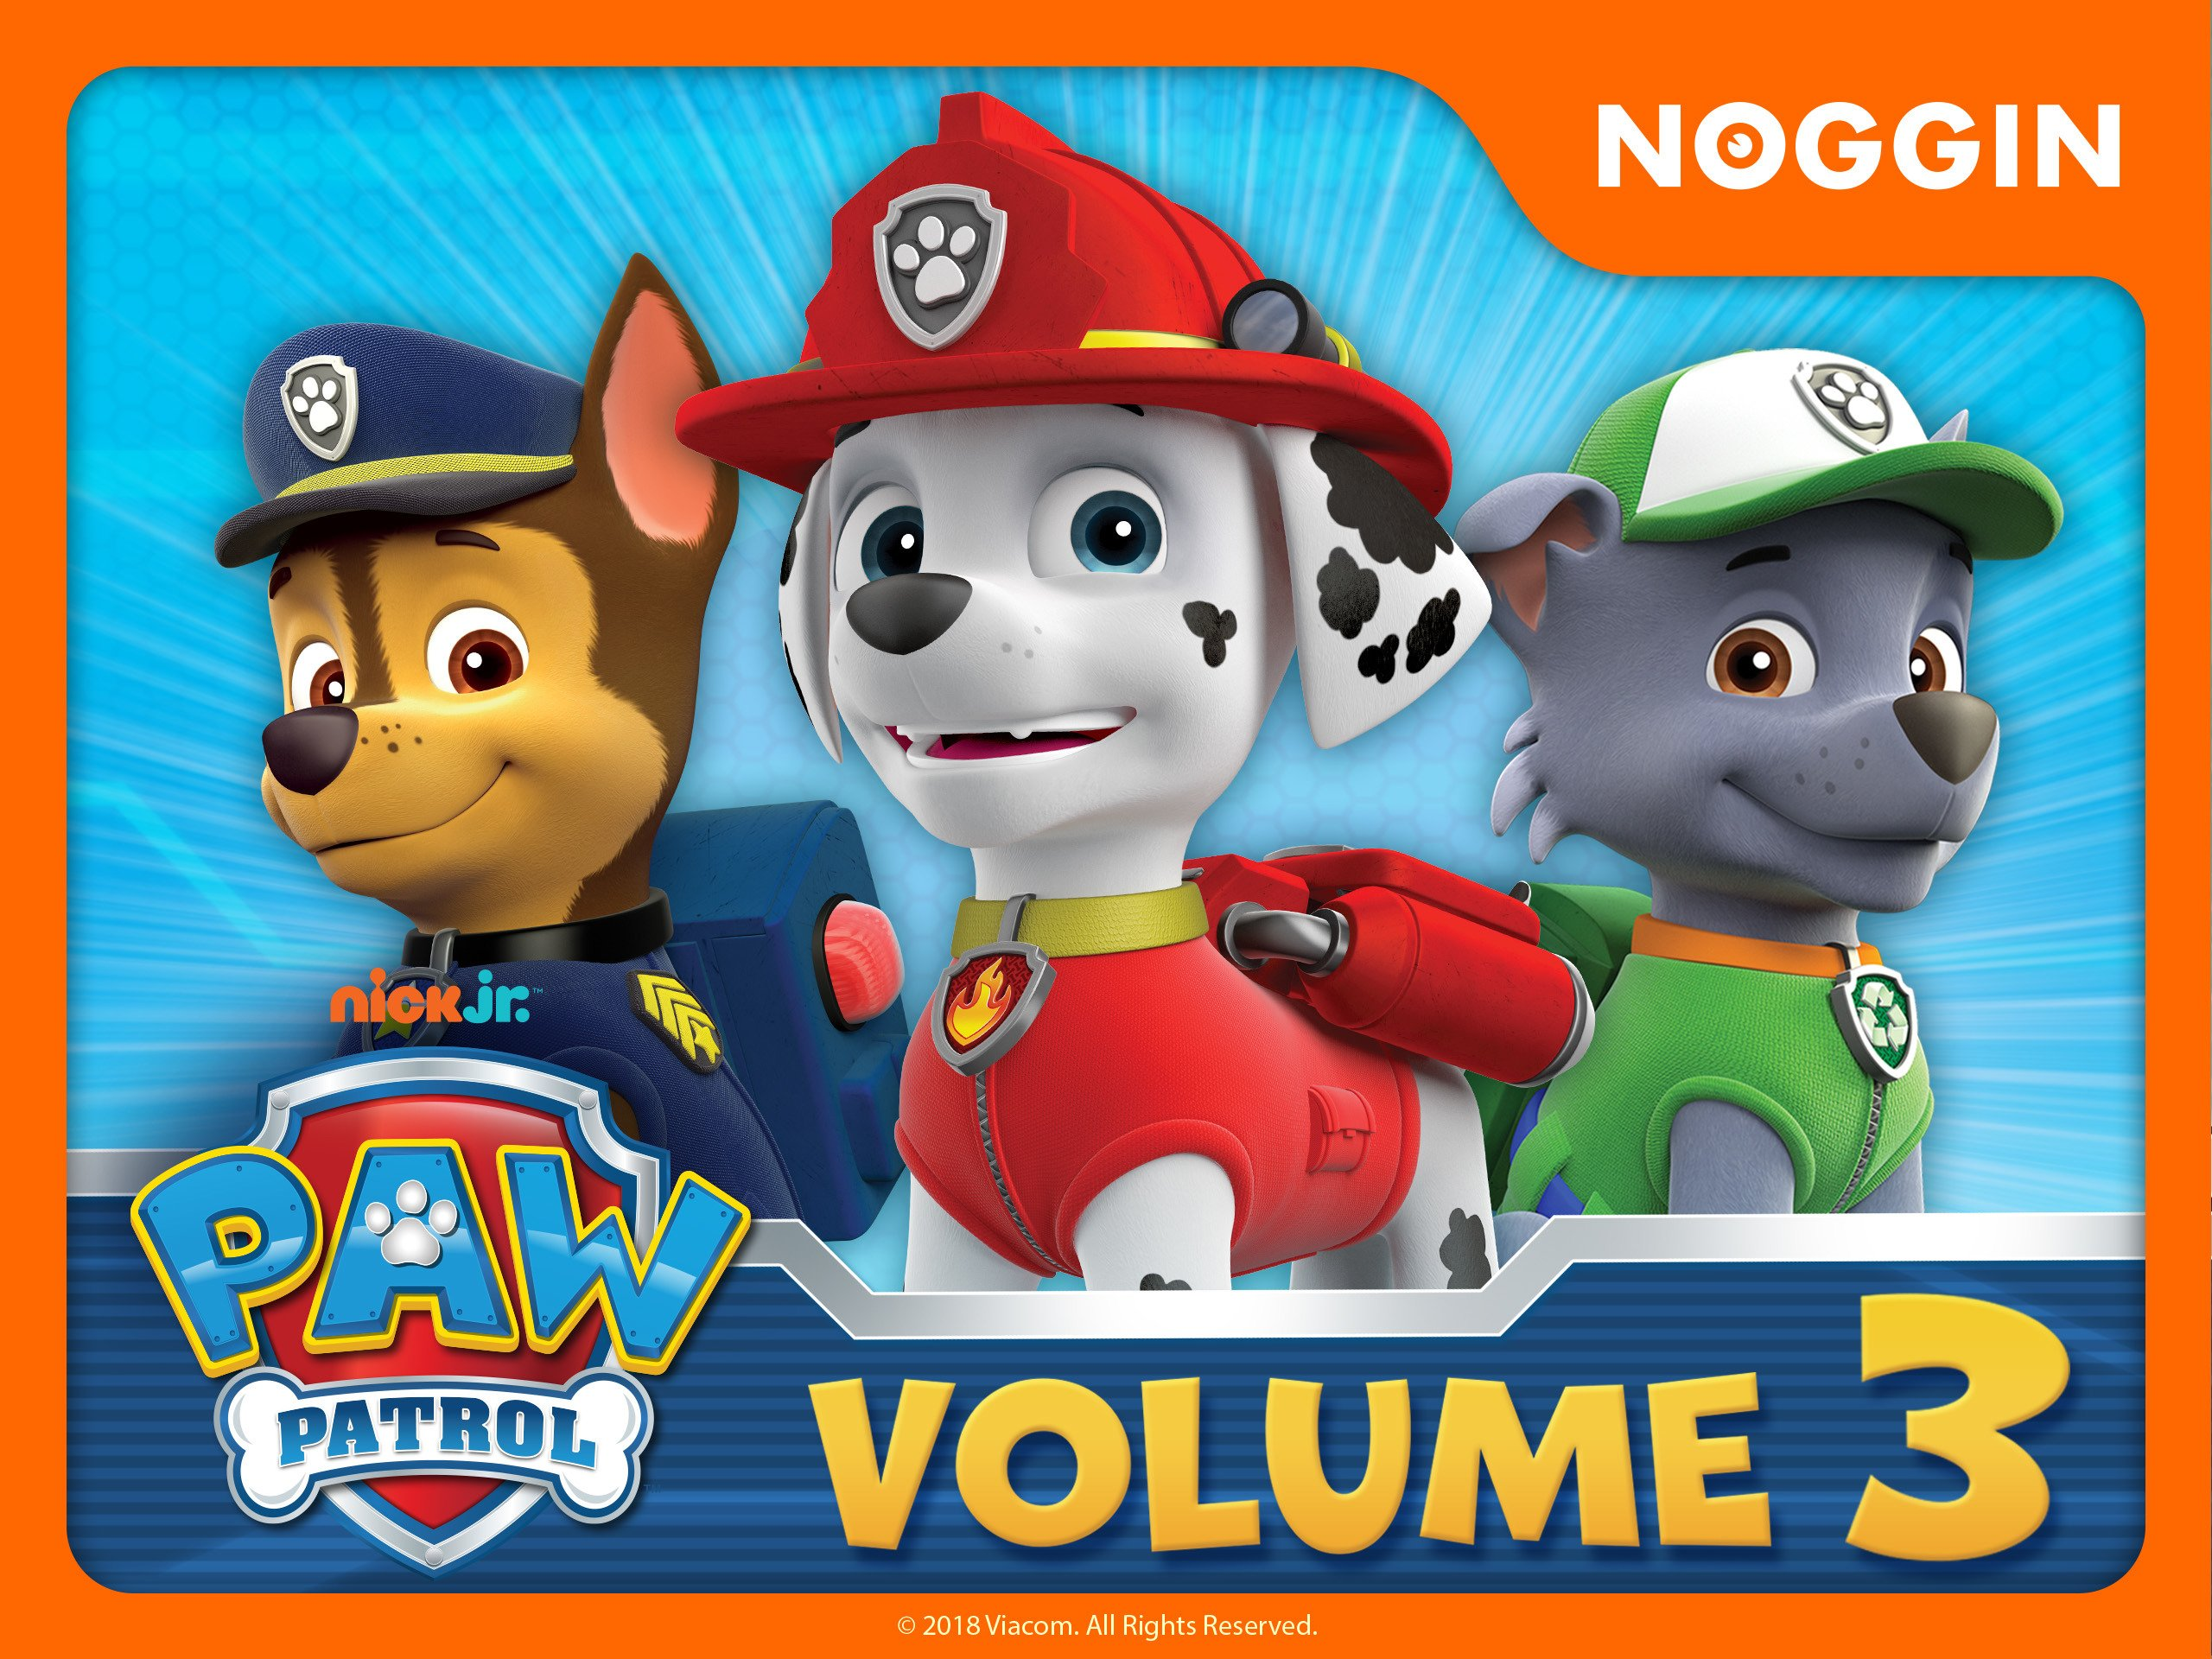 Watch Paw Patrol Volume 5 Prime Video